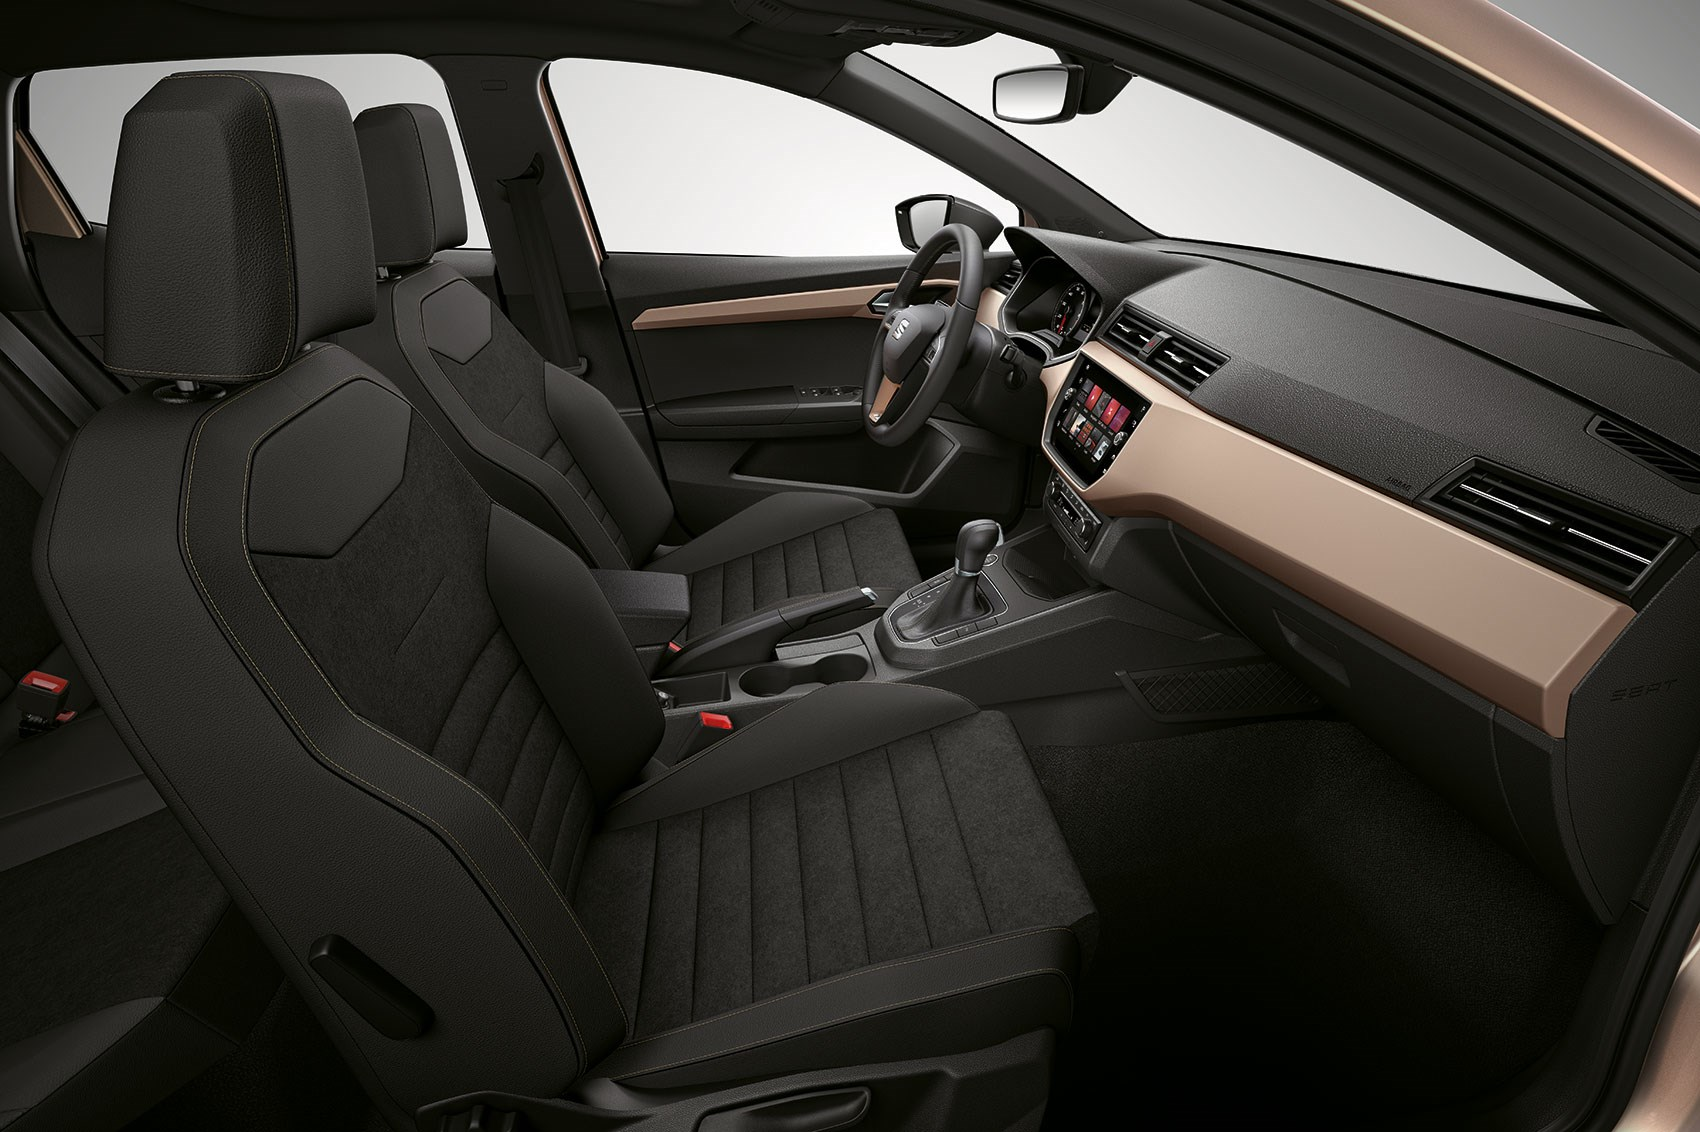 https://car-images.bauersecure.com/pagefiles/69618/new-seat-ibiza_006.jpg